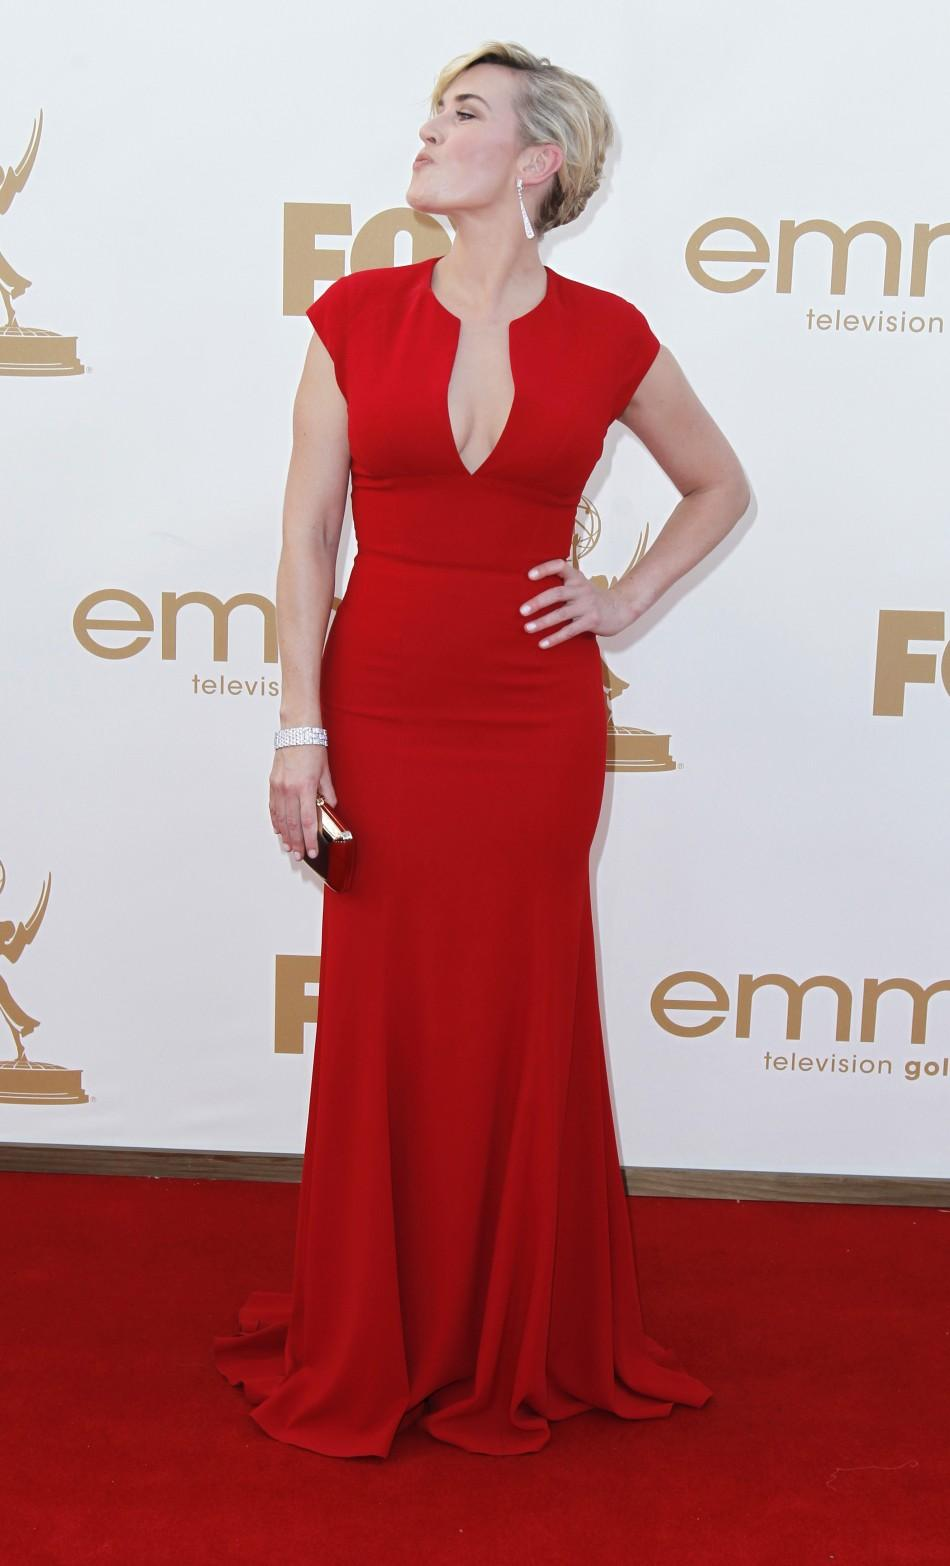 Actress Kate Winslet arrives at the 63rd Primetime Emmy Awards in Los Angeles